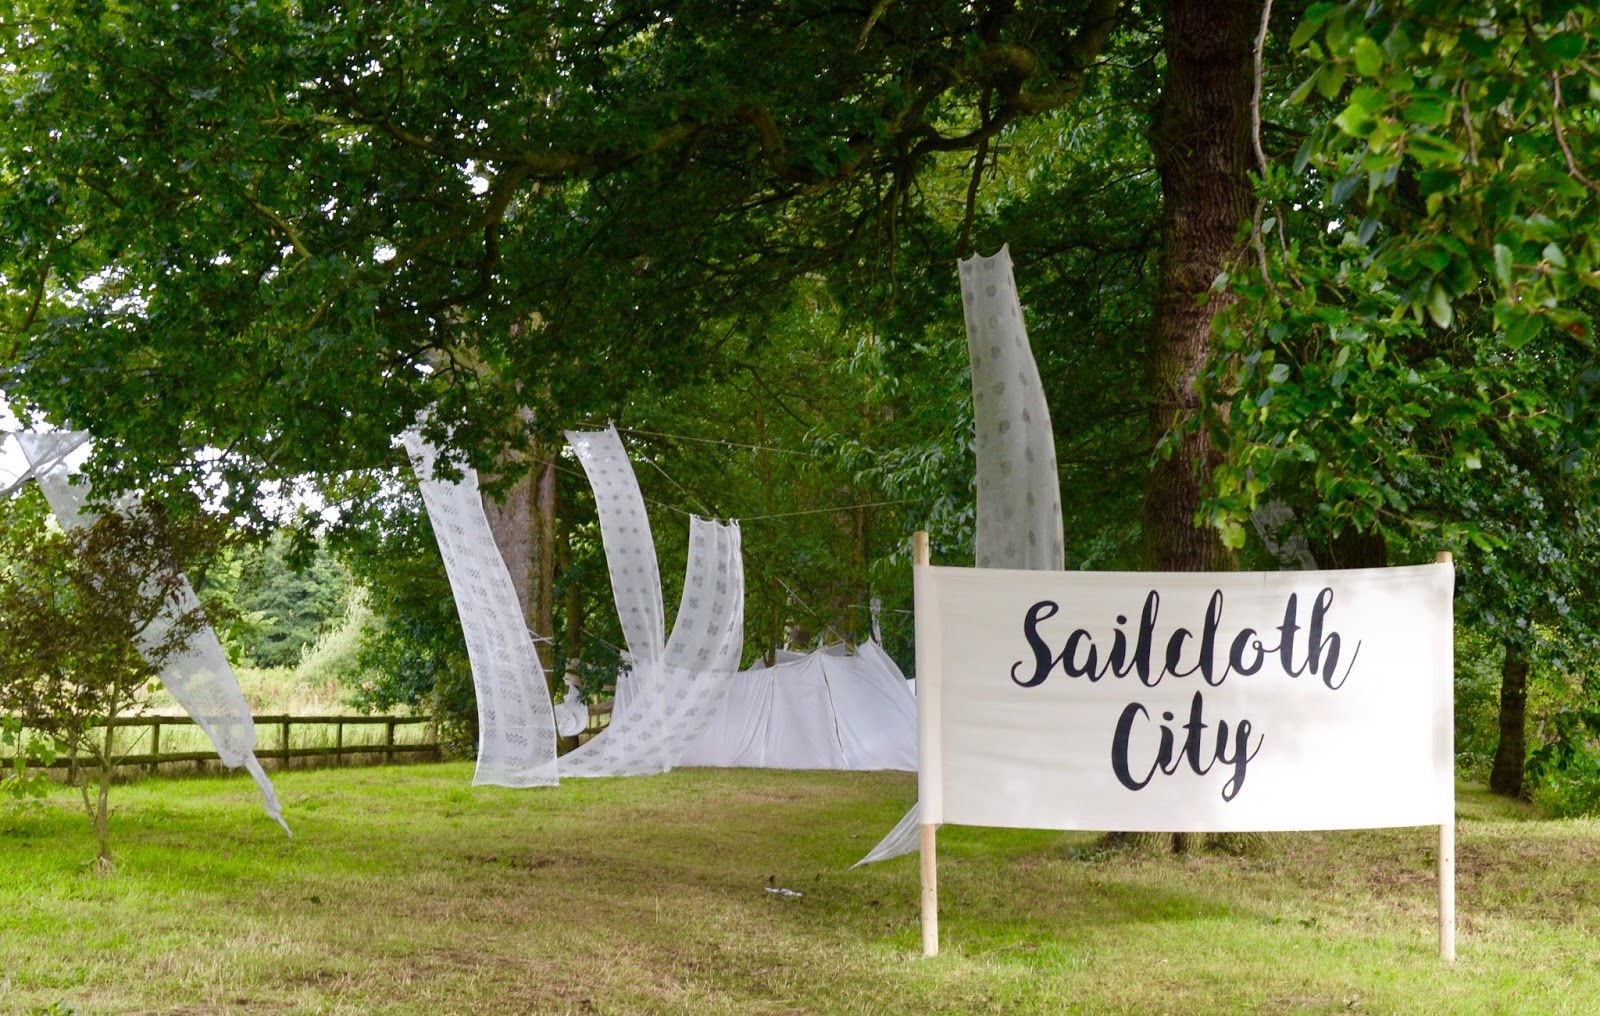 33 Reasons we LOVED the Just So Festival 2016 - sailcloth city by the lake